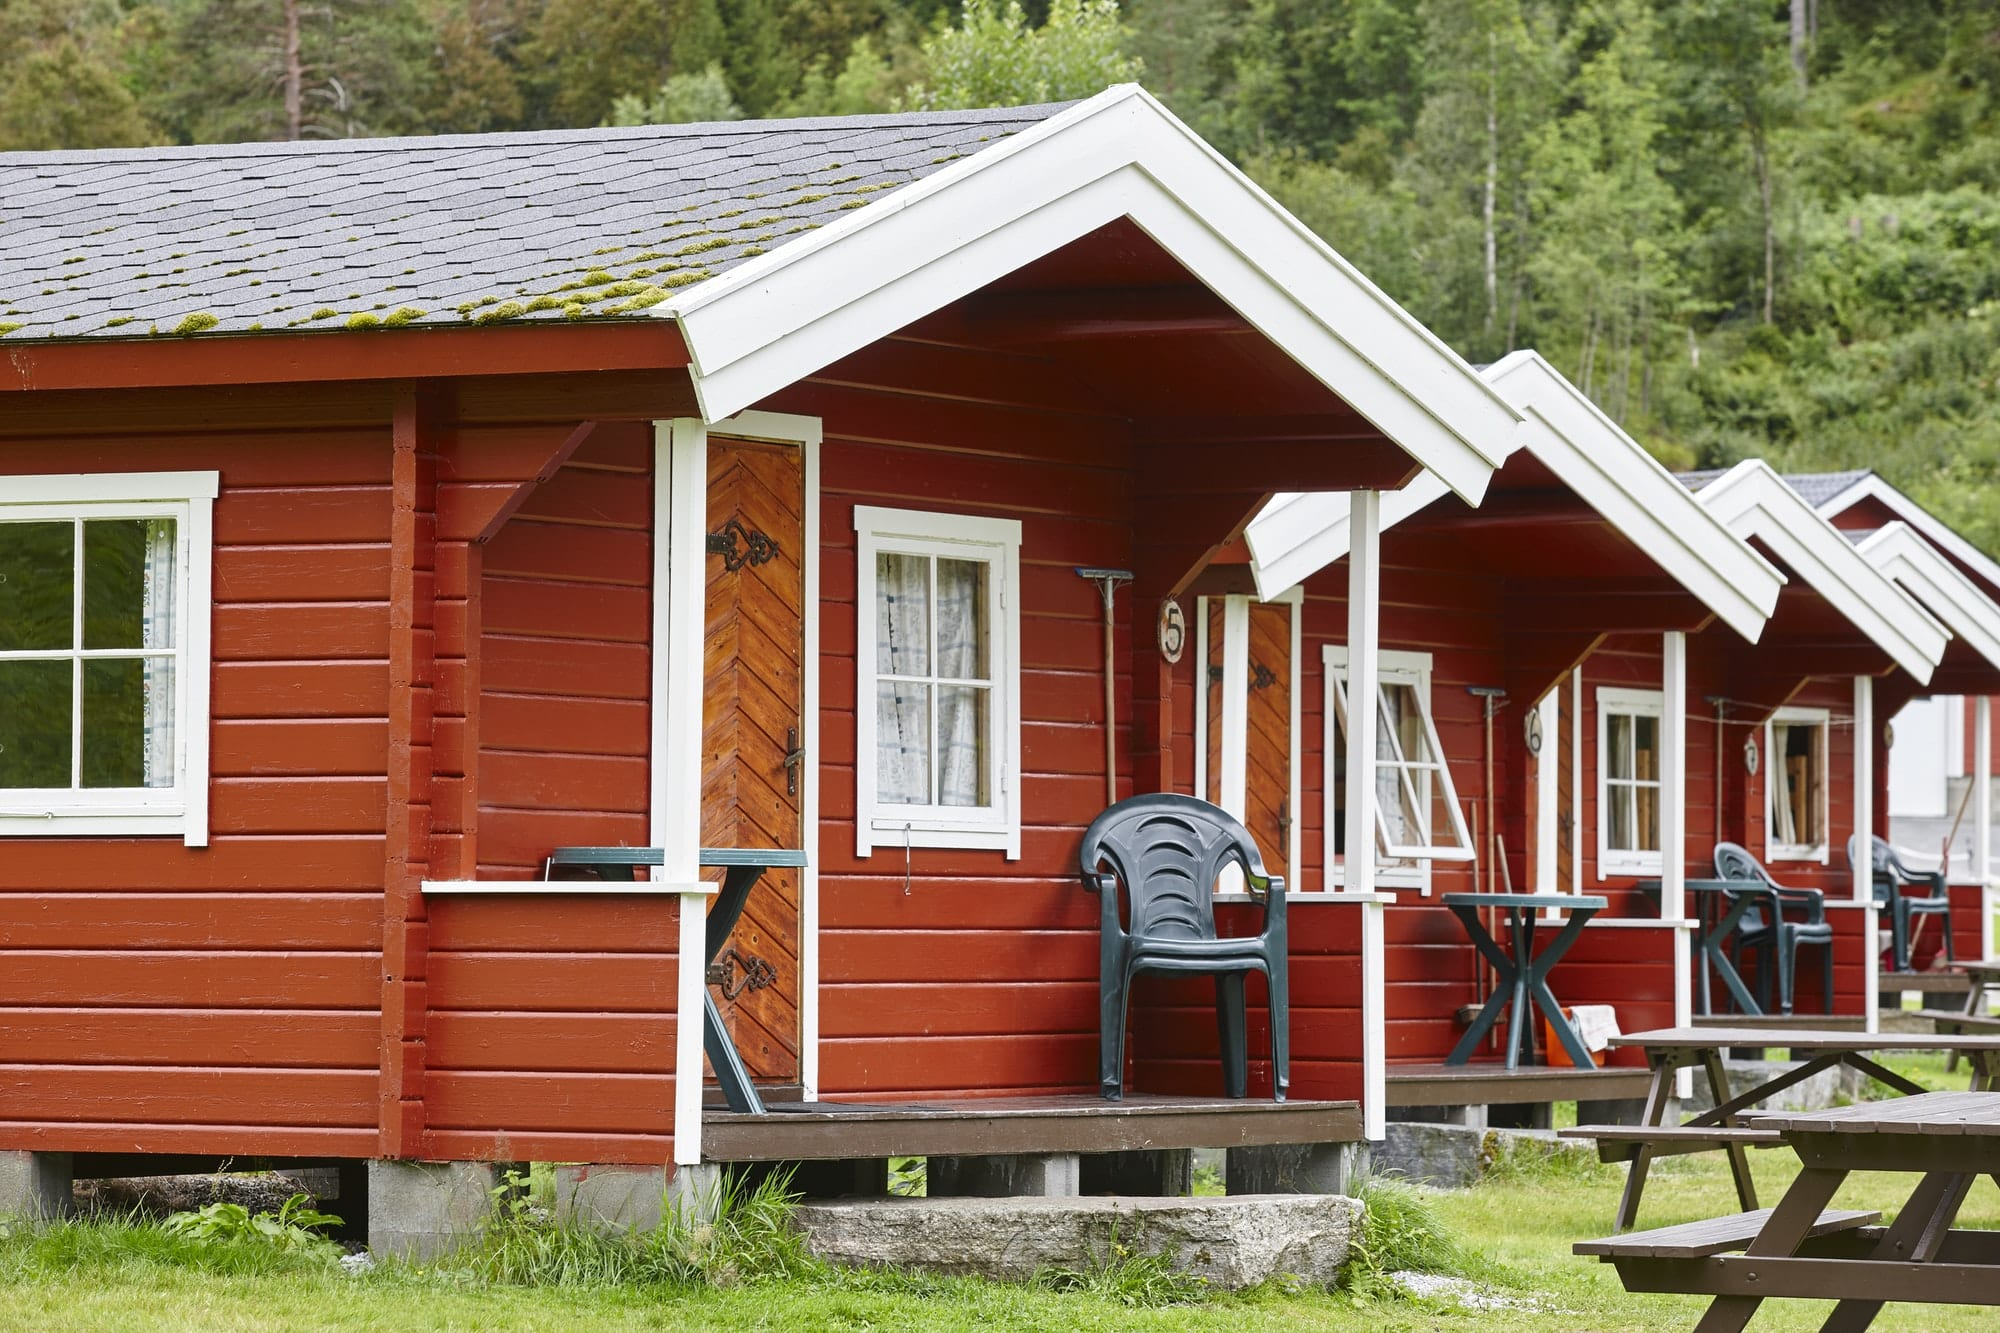 Traditional norwegian red wooden cabins facades. Travel Norway